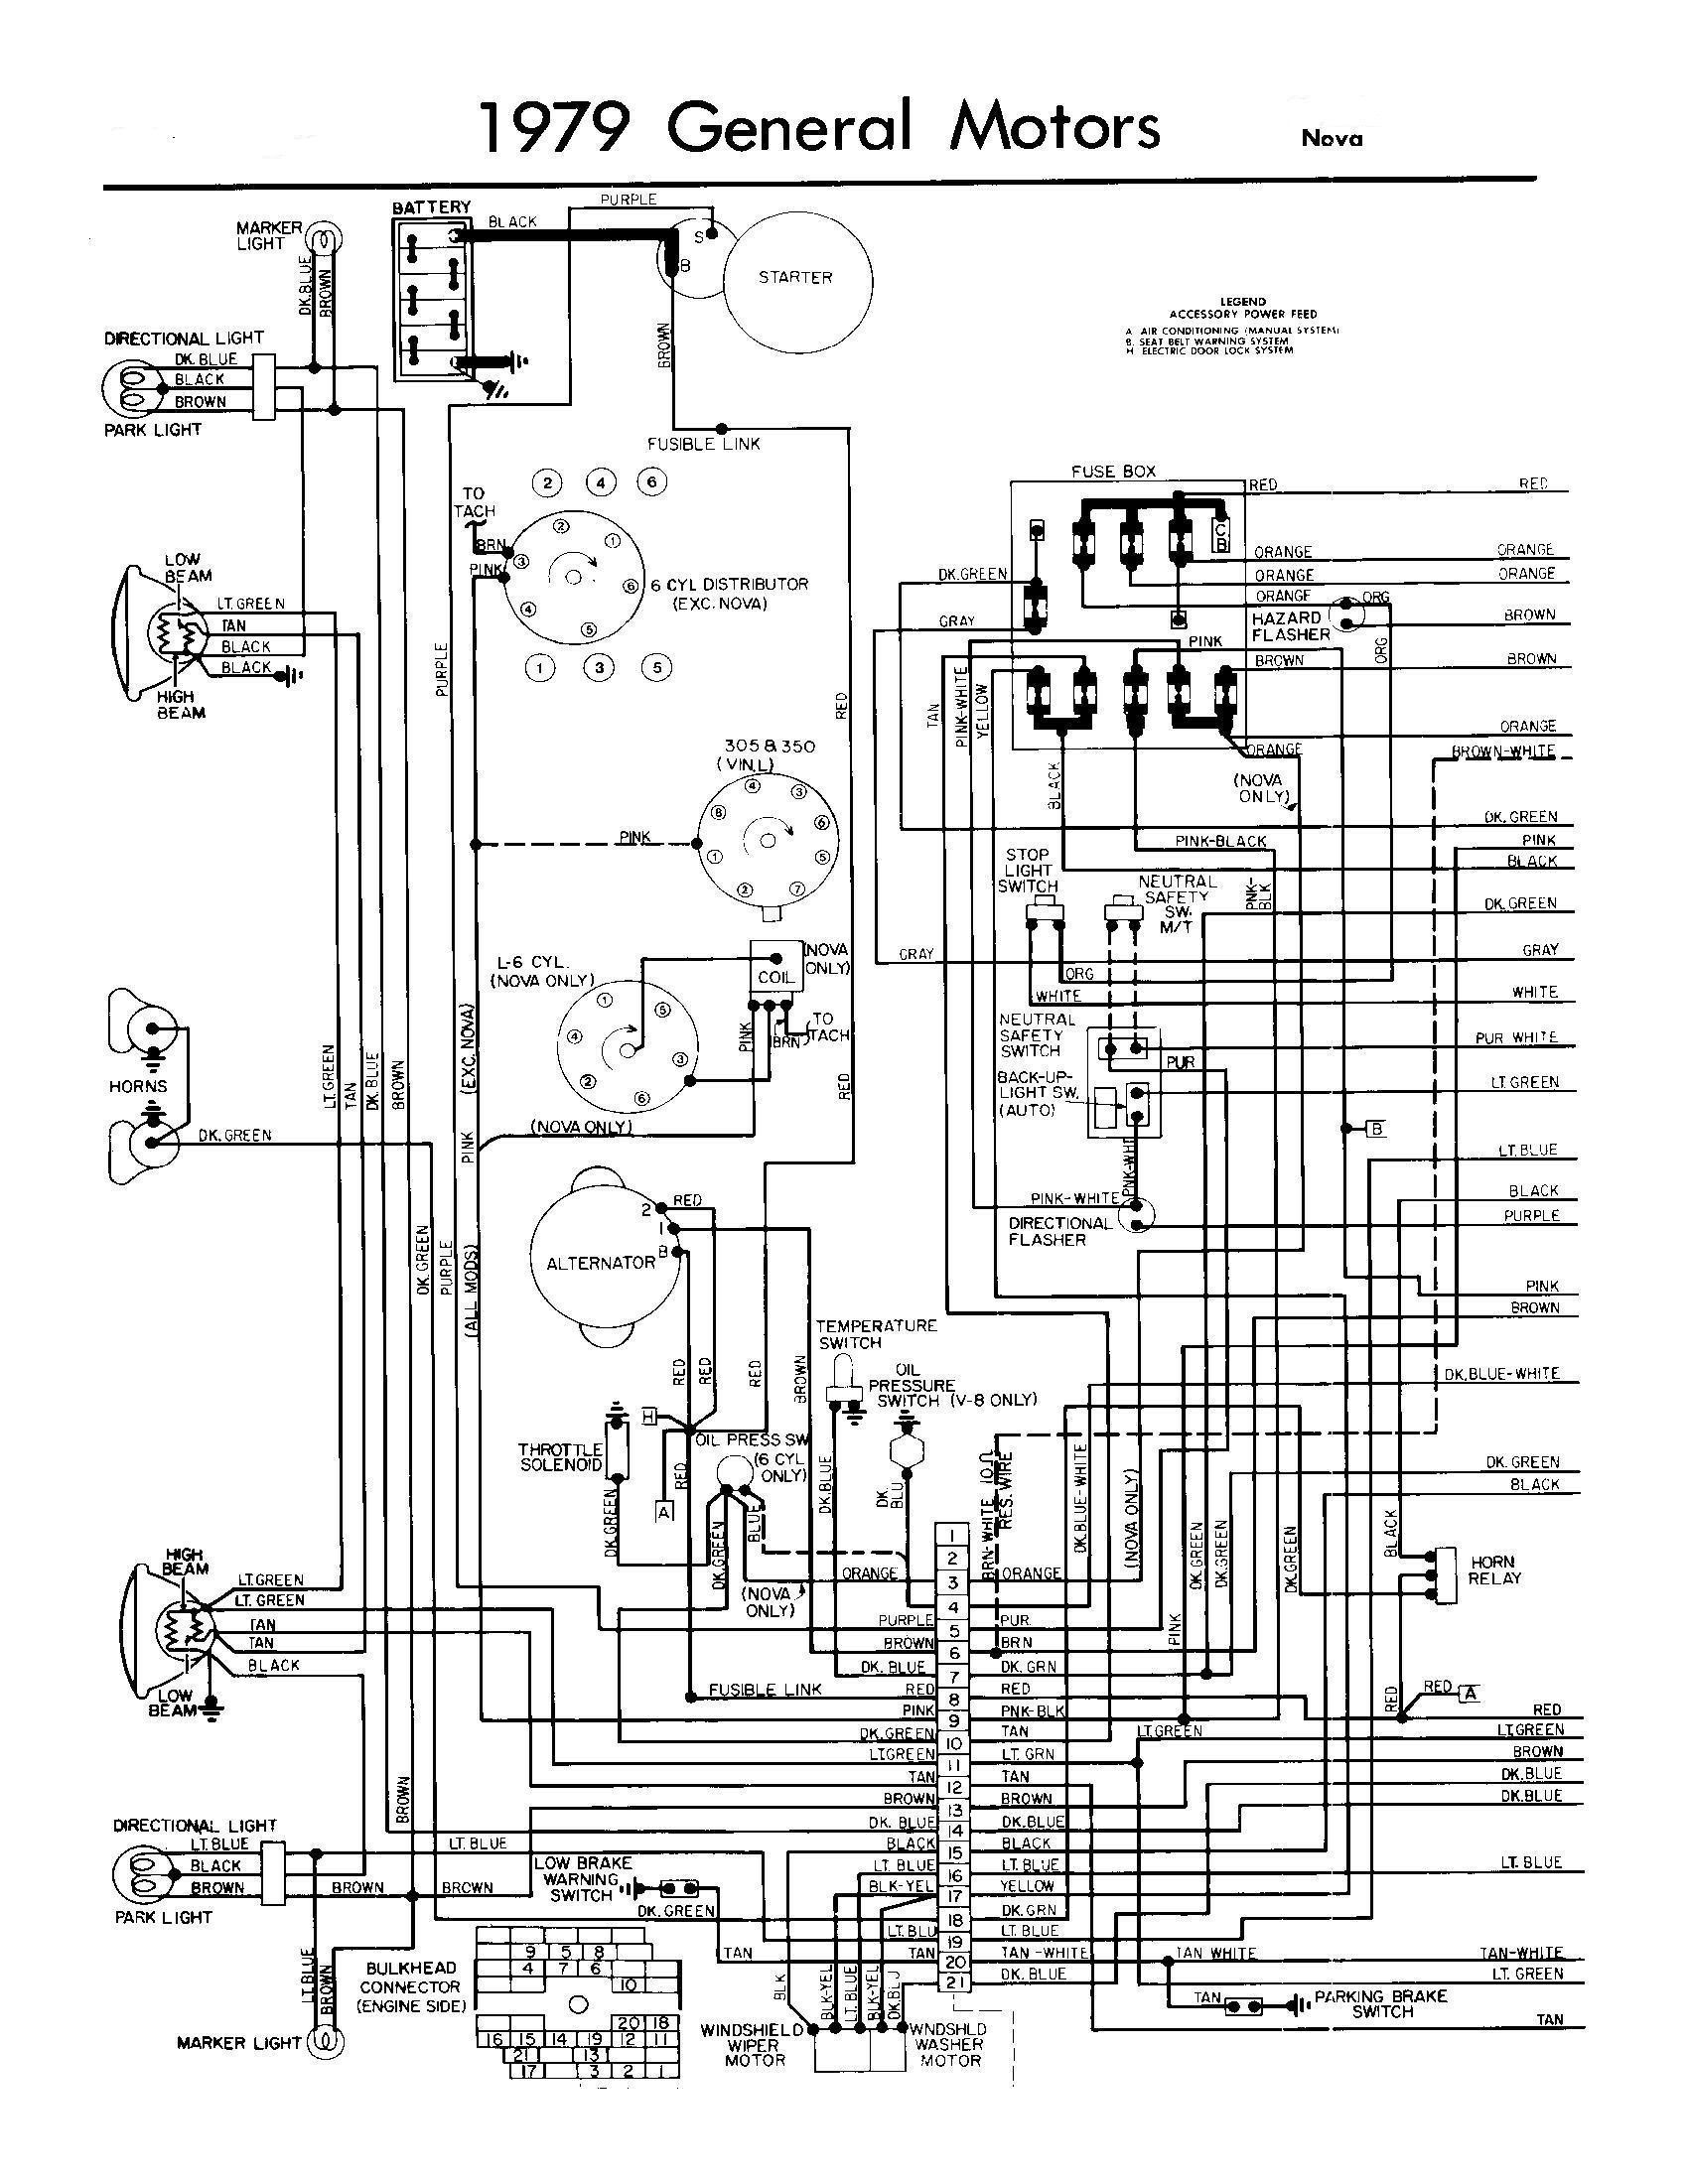 Wiring Diagram For Honda Civic 1993